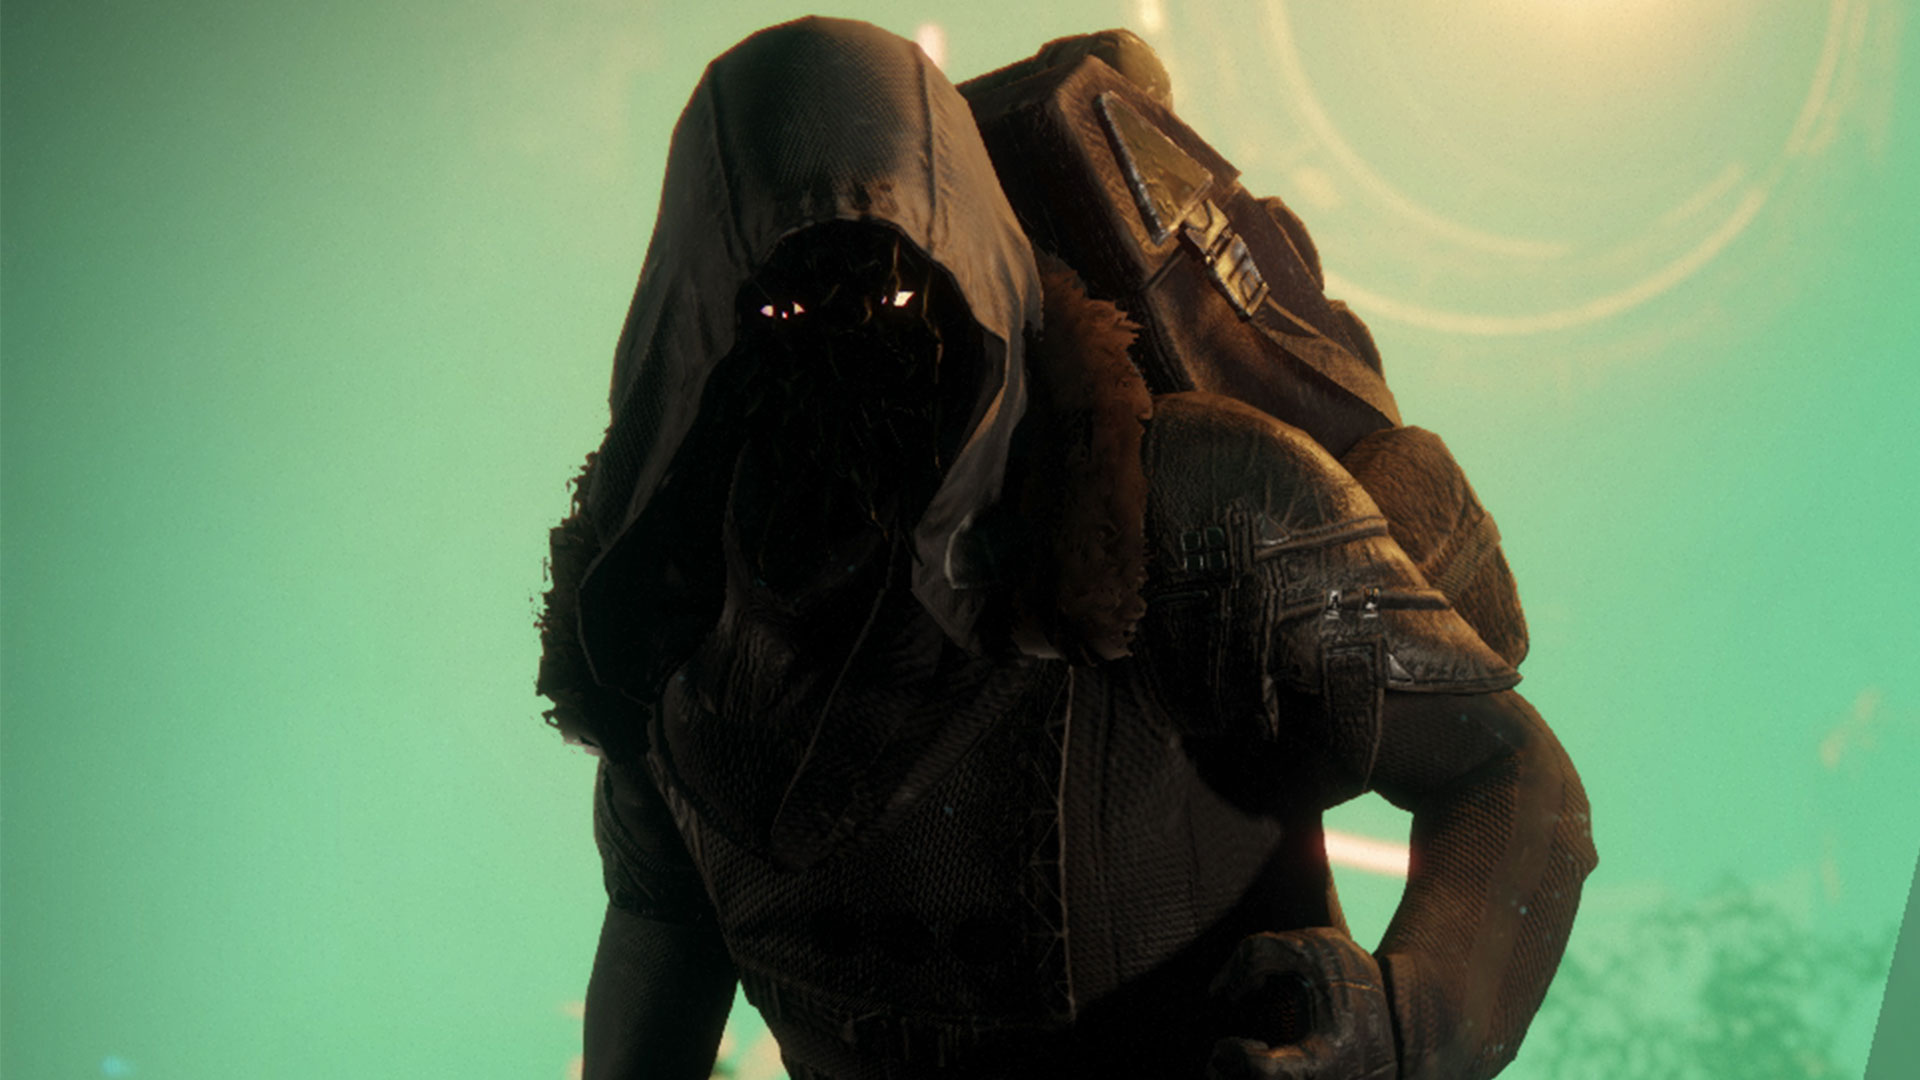 Destiny 2 Xur location and items, March 8-11